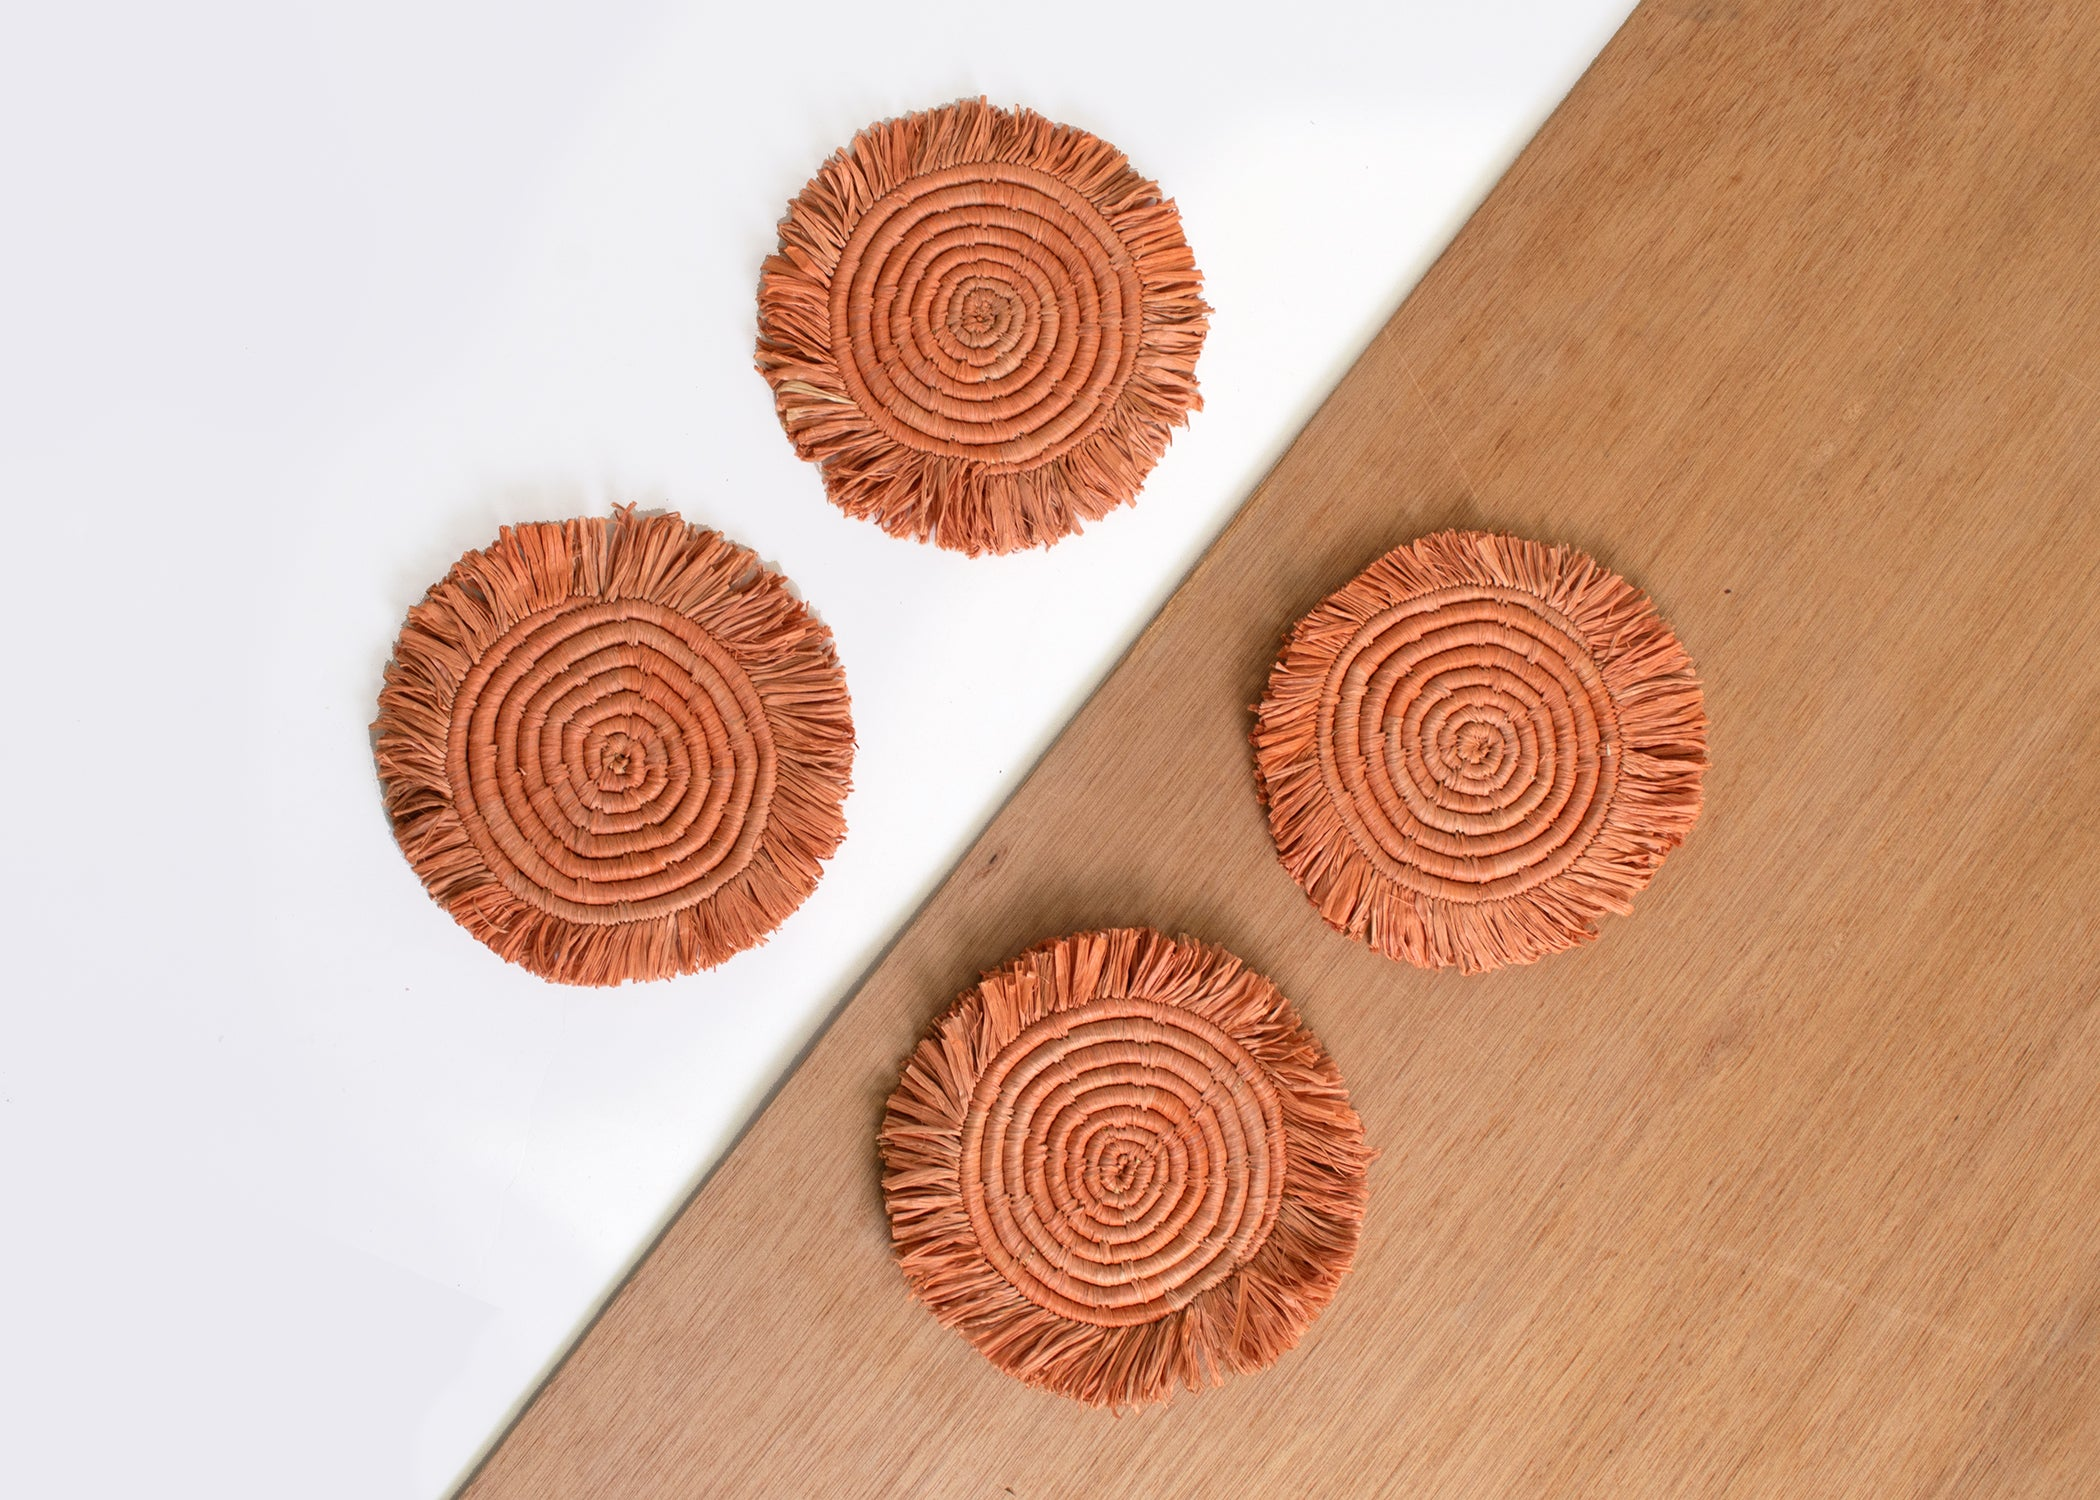 Peach Fringed Raffia Drink Coasters, Set of 4 - KAZI - Artisan made high quality home decor and wall art